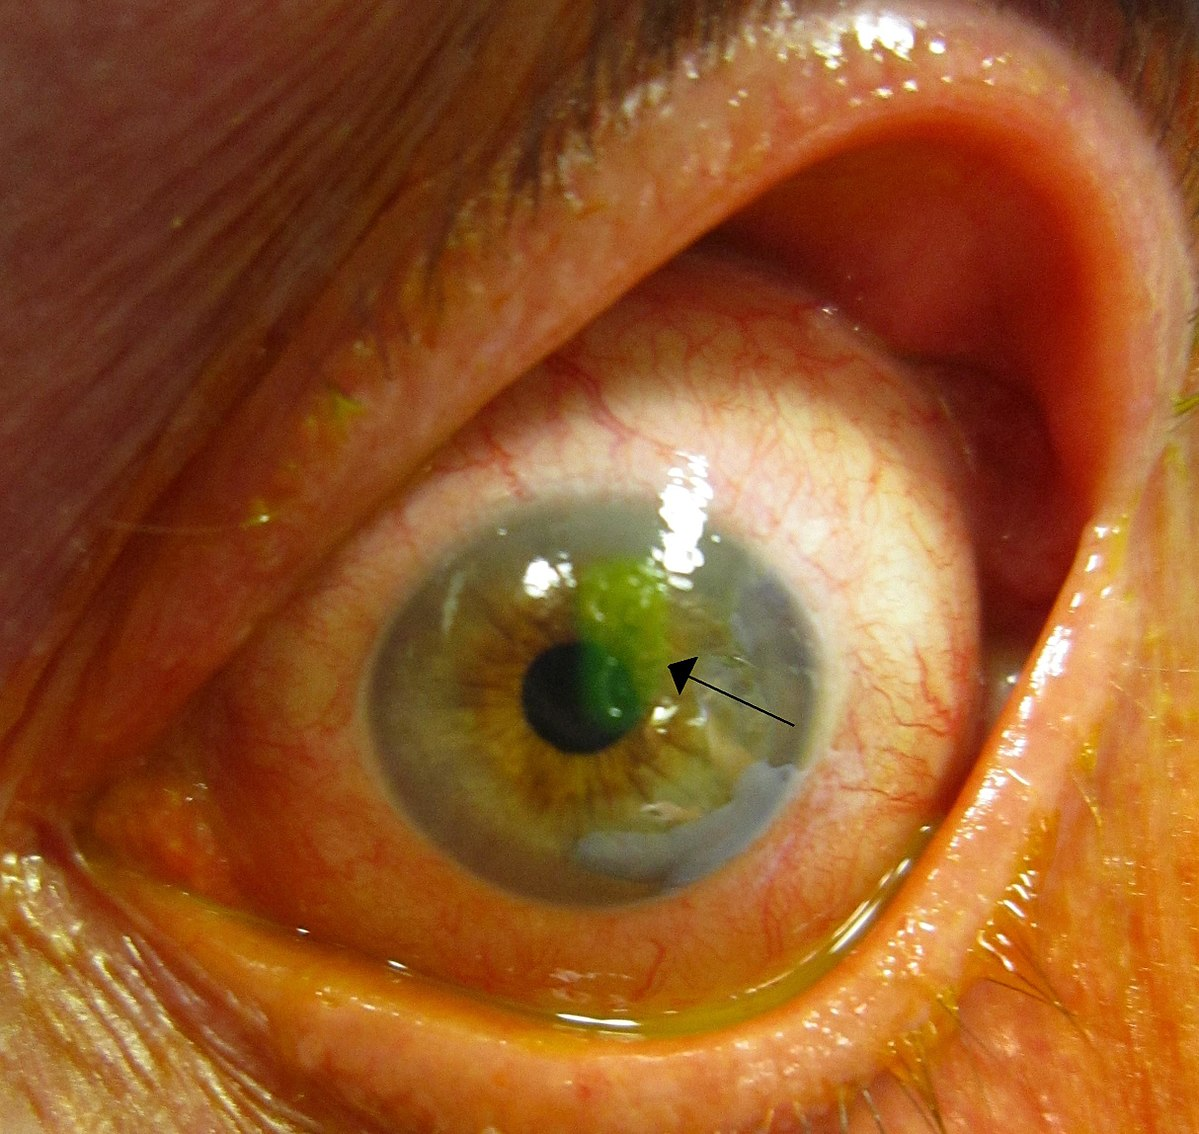 1200px-Human_cornea_with_abrasion_highlighted_by_fluorescein_staining